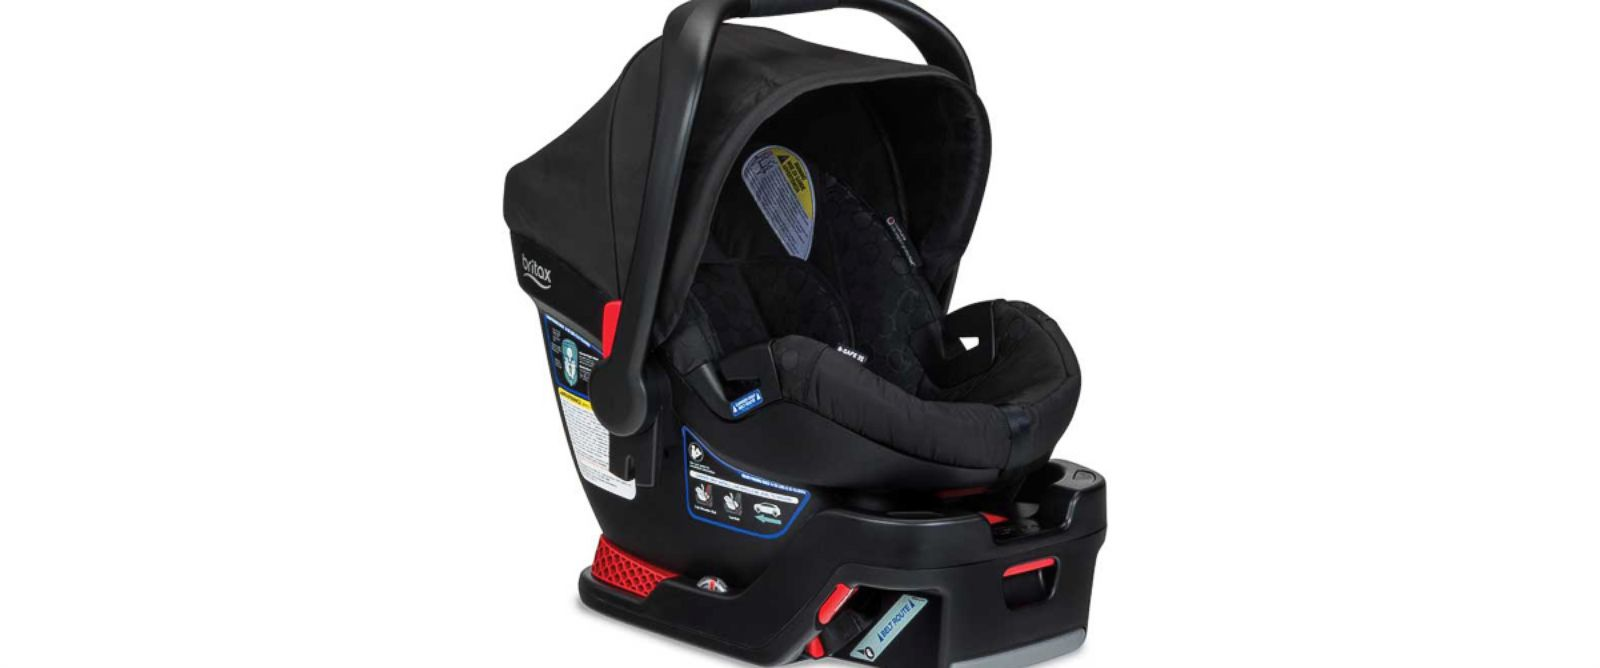 PHOTO: Britax B-Safe 35 and B-Safe 35 Elite infant car seats and travel systems have been recalled.